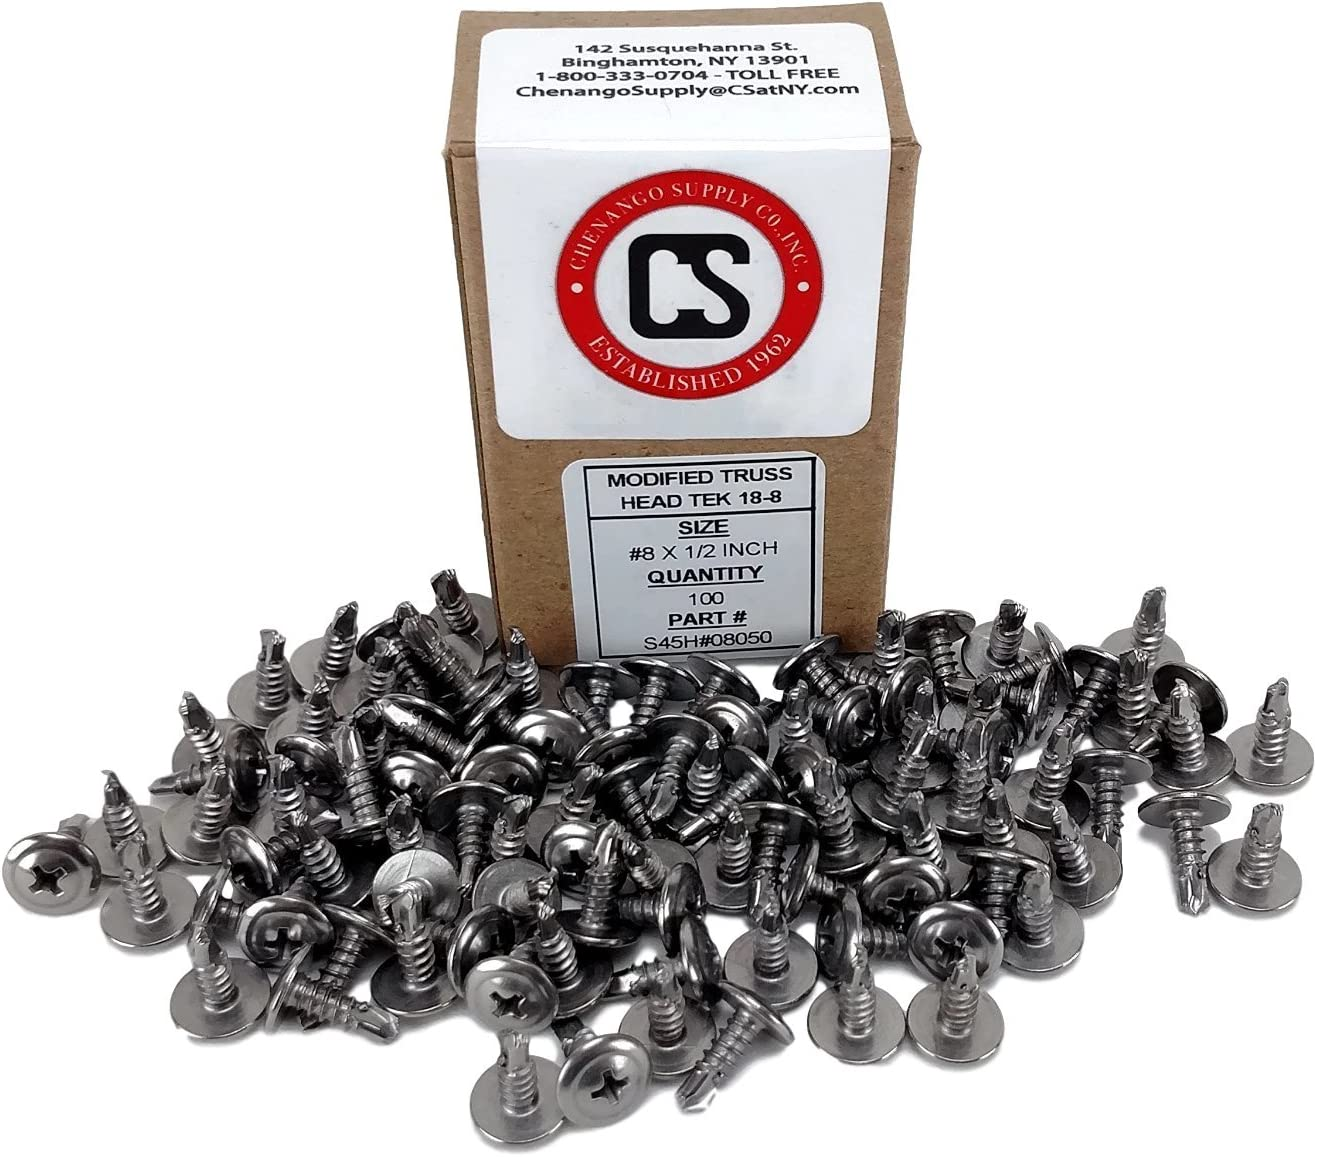 Modified Truss Head Self Driller 1//2 to 1-5//8 Length in Listing 100 Pieces #8 x 1 inch 410 Stainless #8 x 1 Wafer Head Philips Self Drilling Sheet Metal Tek Screws,